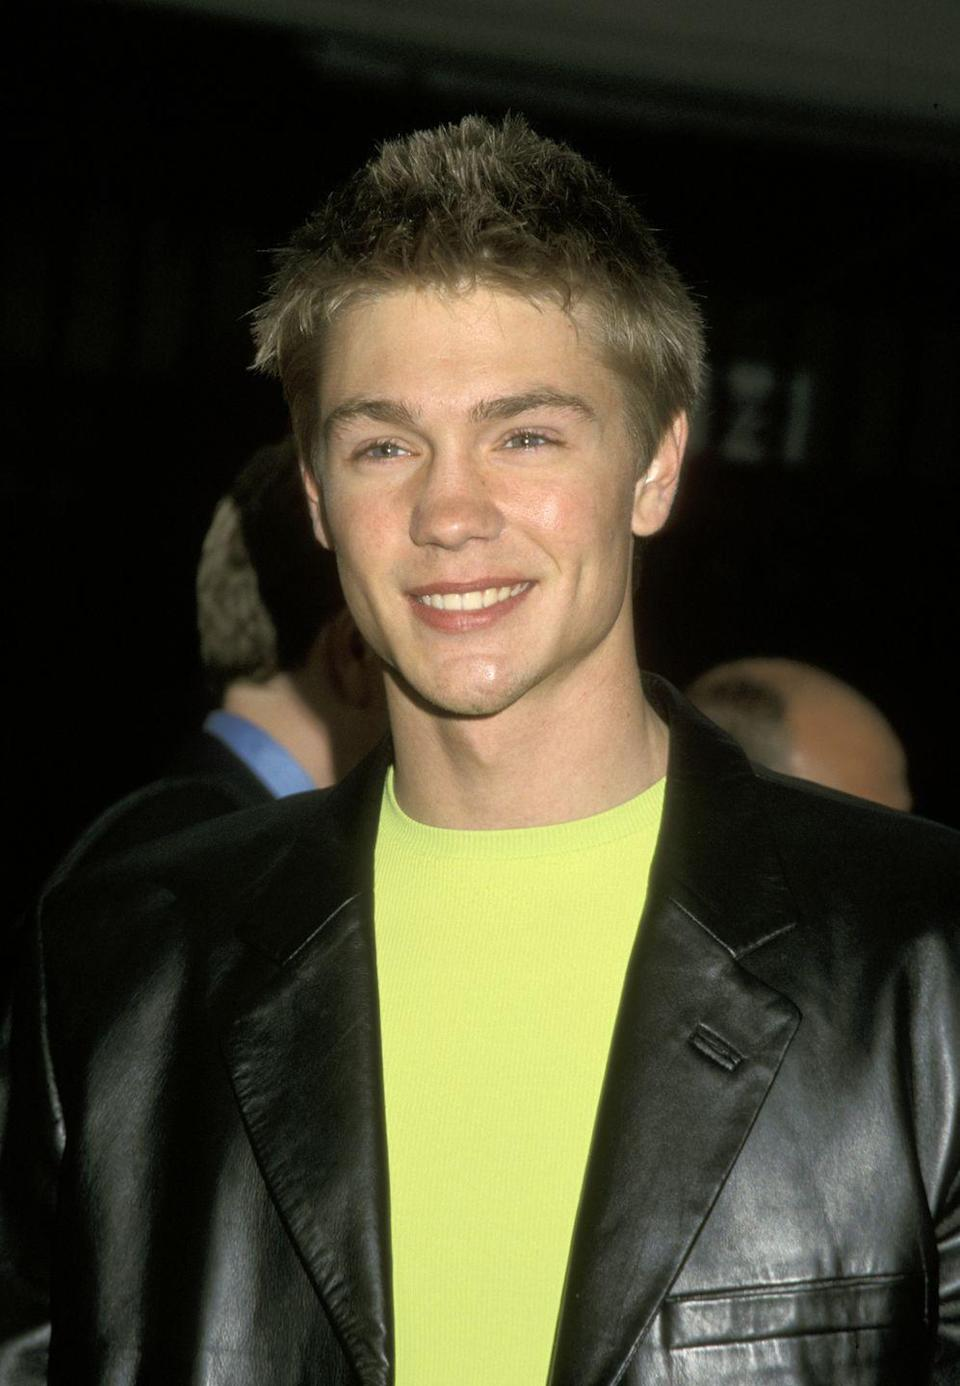 <p>Every millennial remembers a young Chad Michael Murray, who had the small-but-mighty role of high school heartthrob Tristan in season one. Chad debuted on the show just as his star was rising in Hollywood. </p>